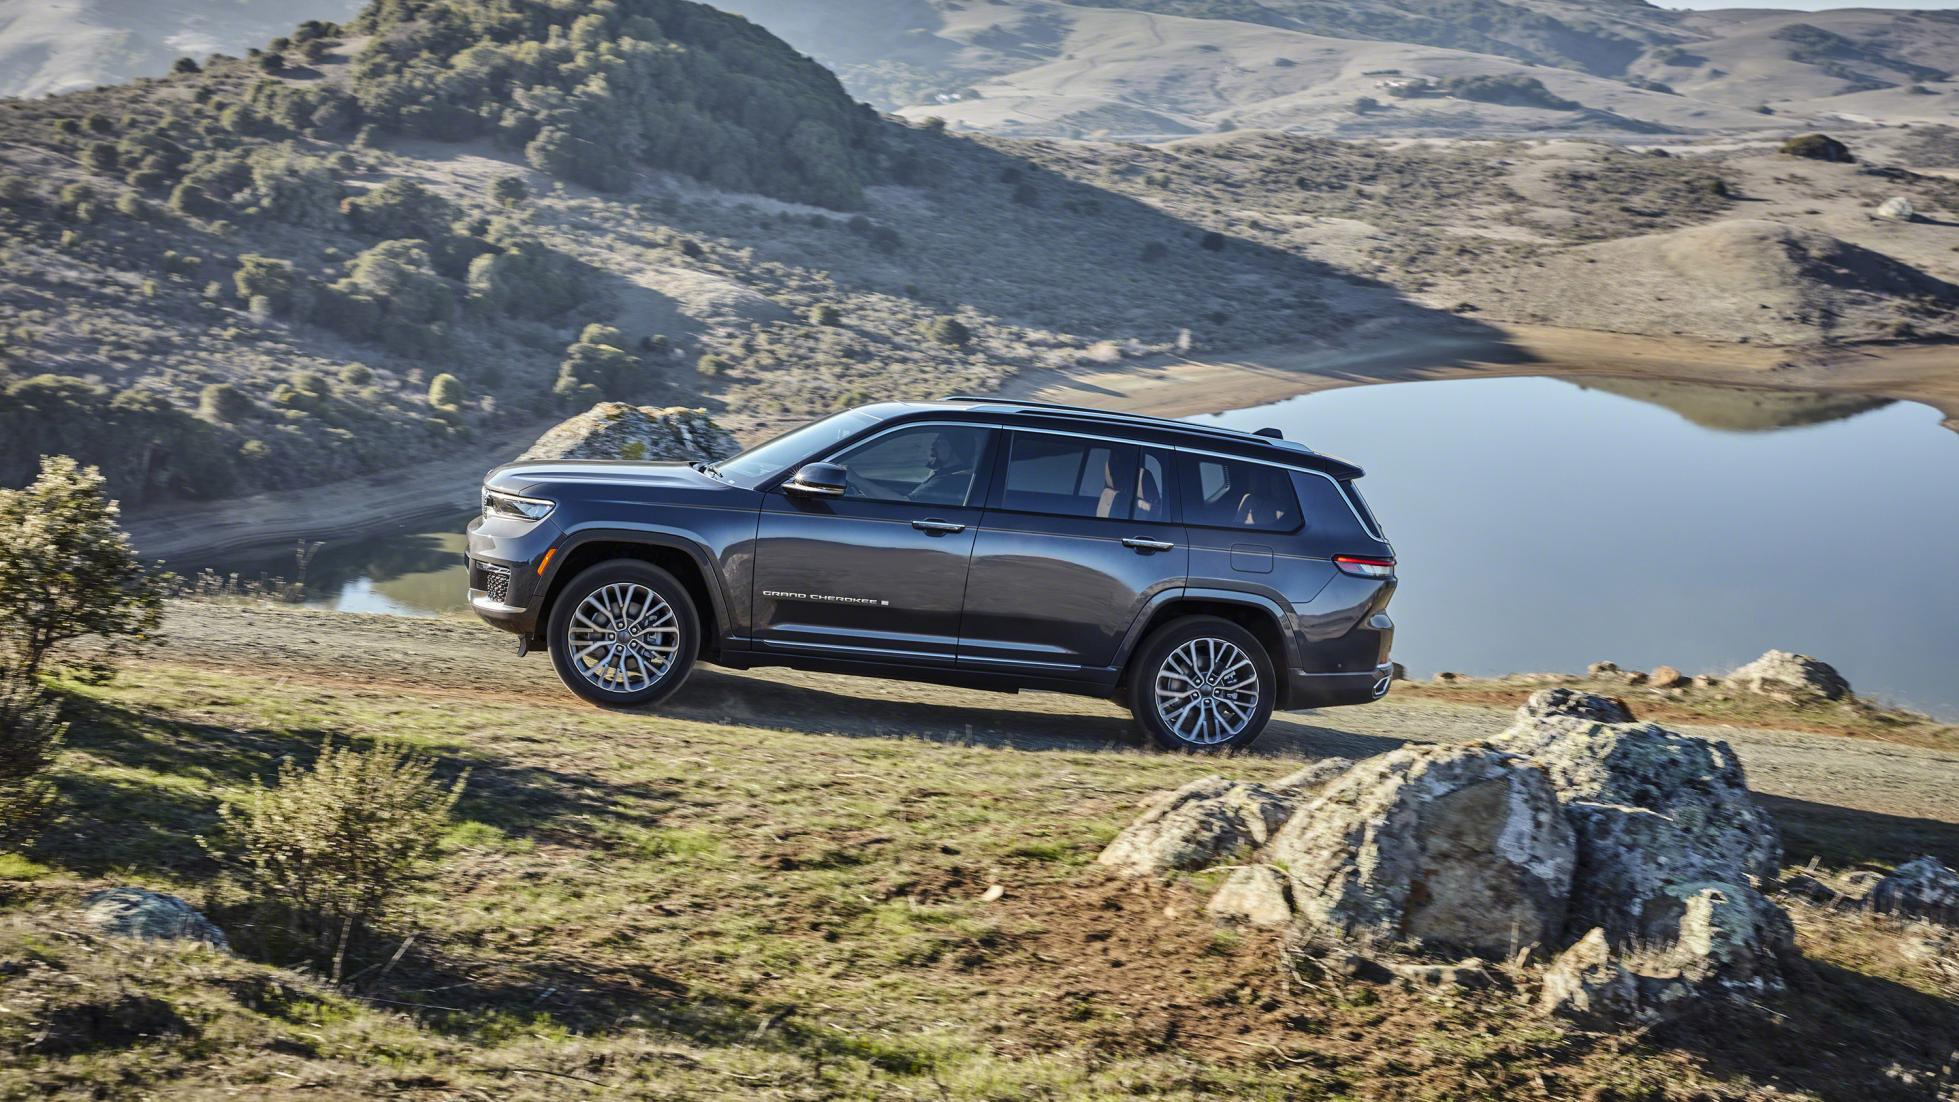 The Jeep Grand Cherokee L outdoors